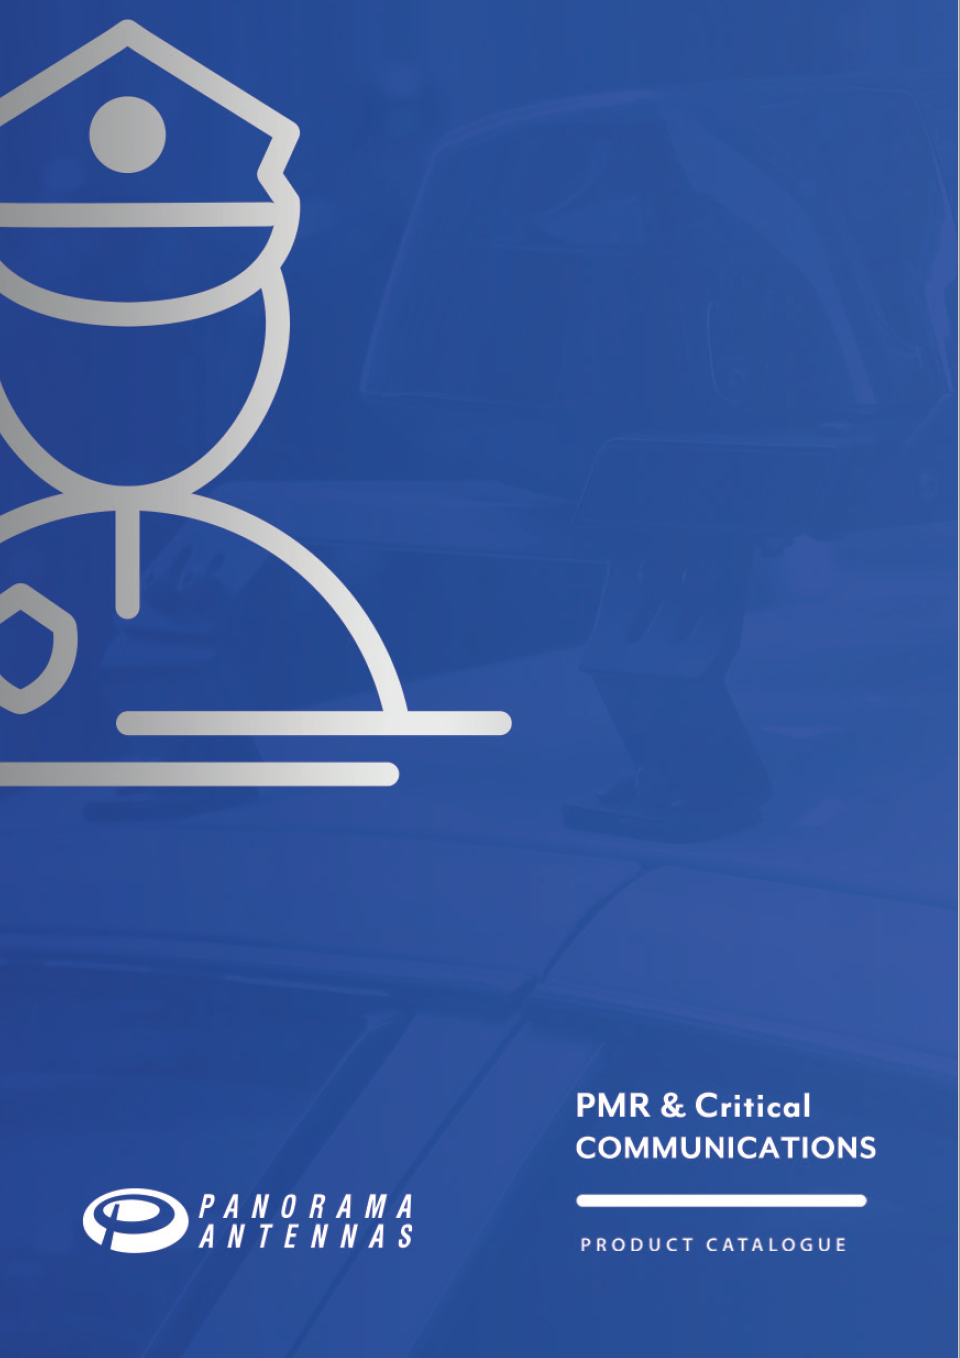 PMR & Critical Communications